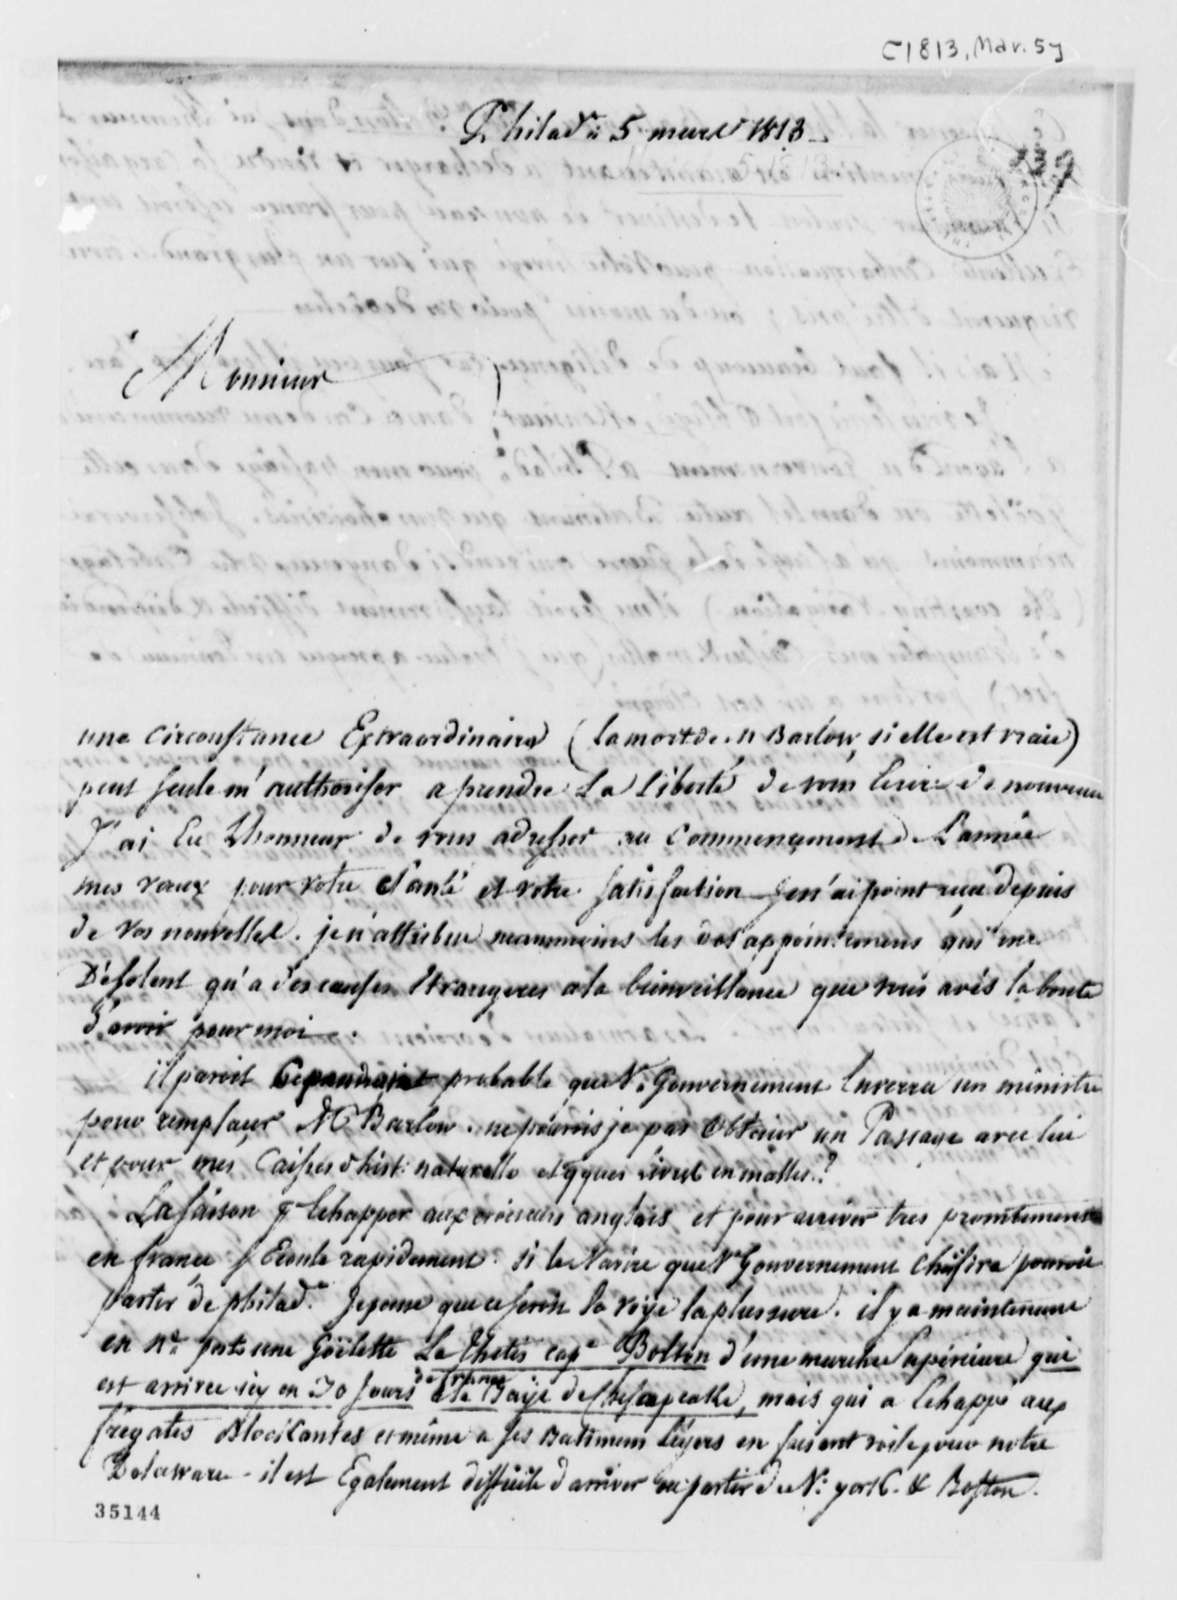 De Lormerie to Thomas Jefferson, March 5, 1813, in French